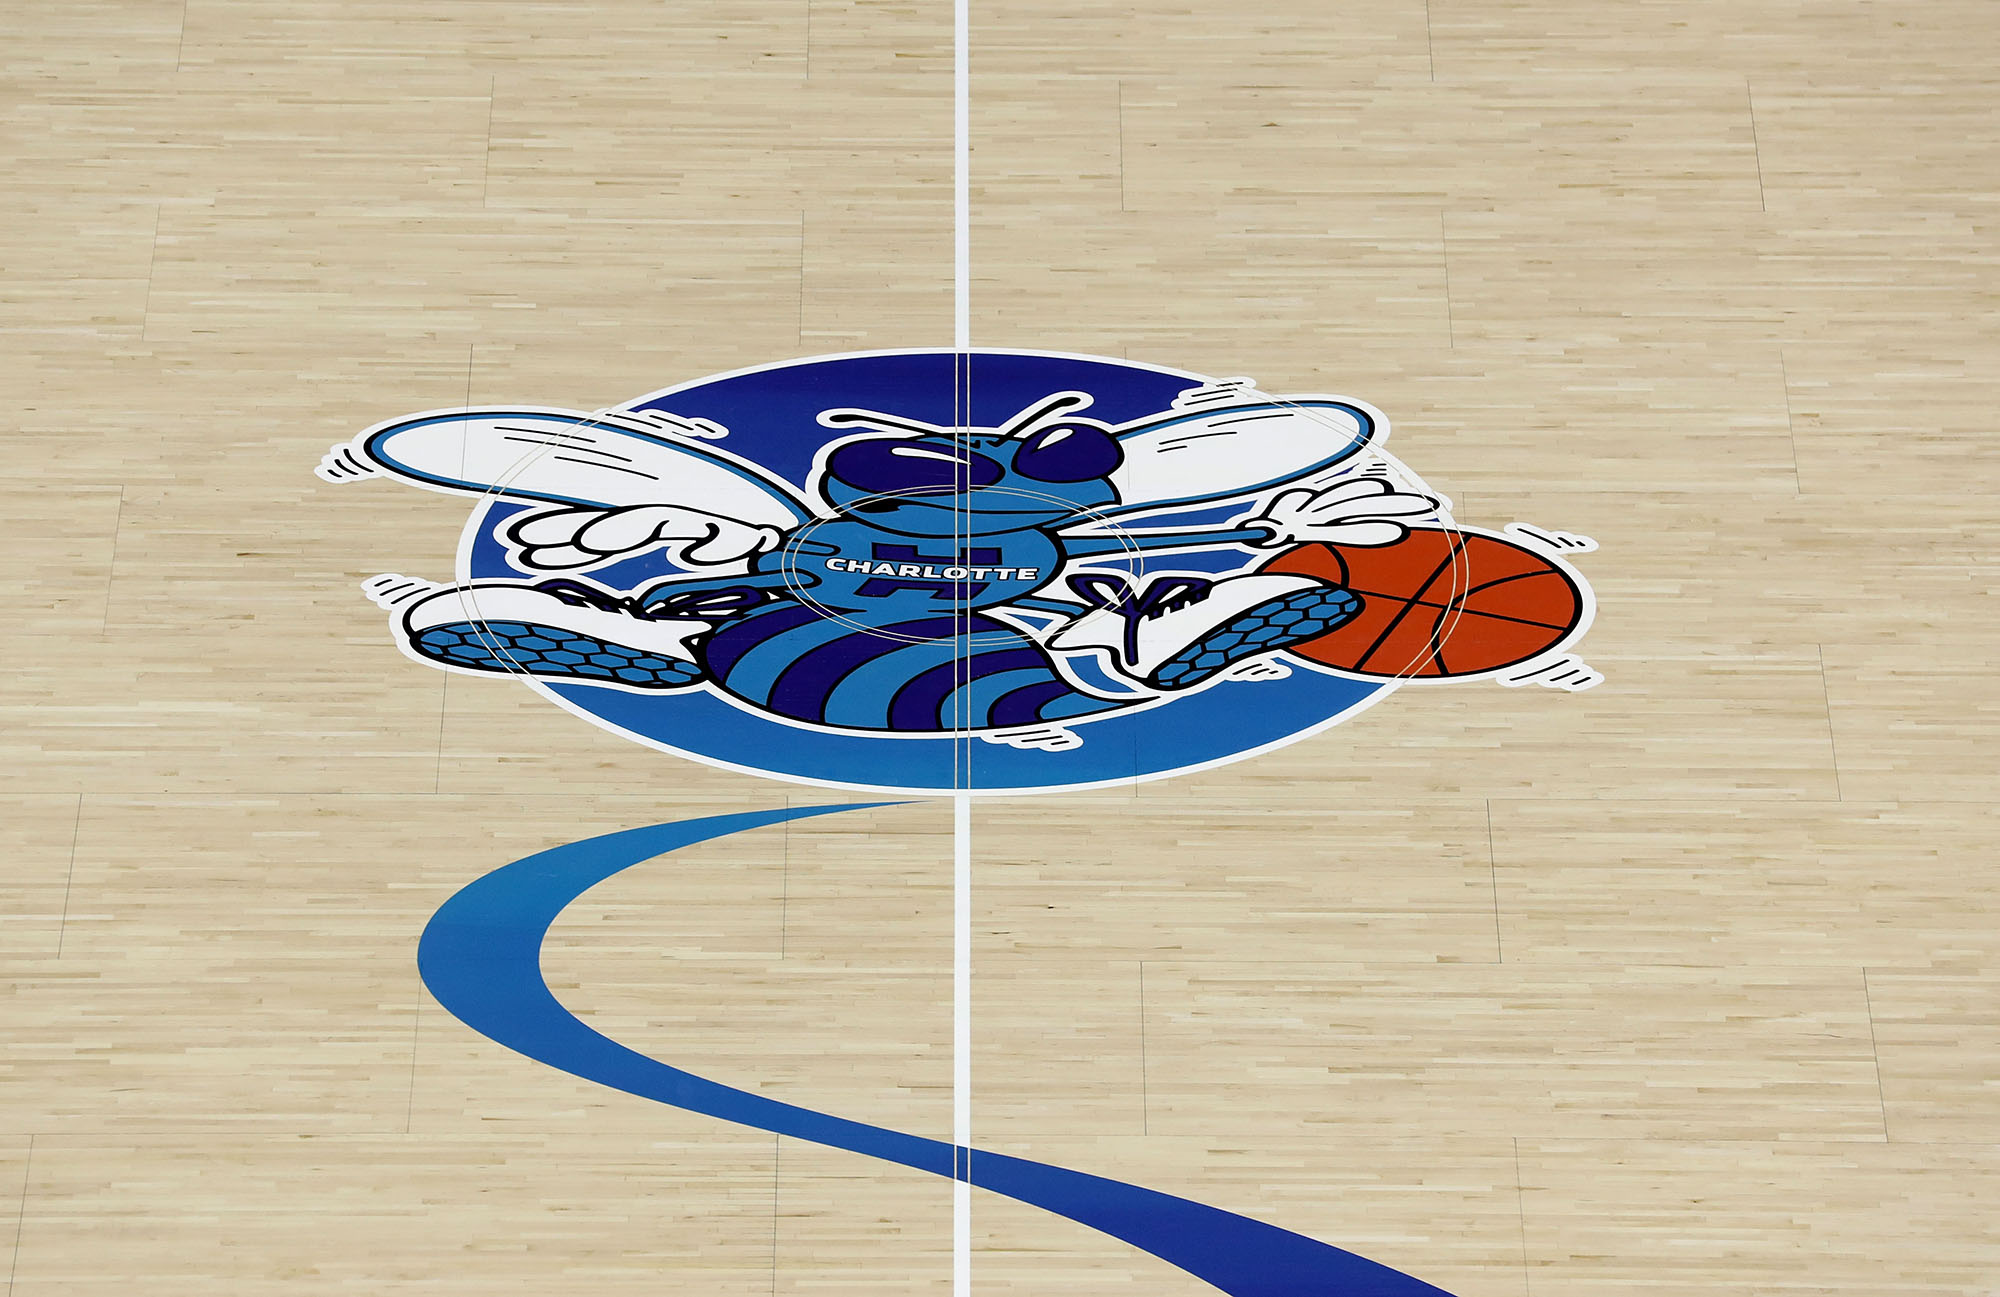 The Charlotte Hornets logo at the Spectrum Center in Charlotte, North Carolina, on October 17, 2018.